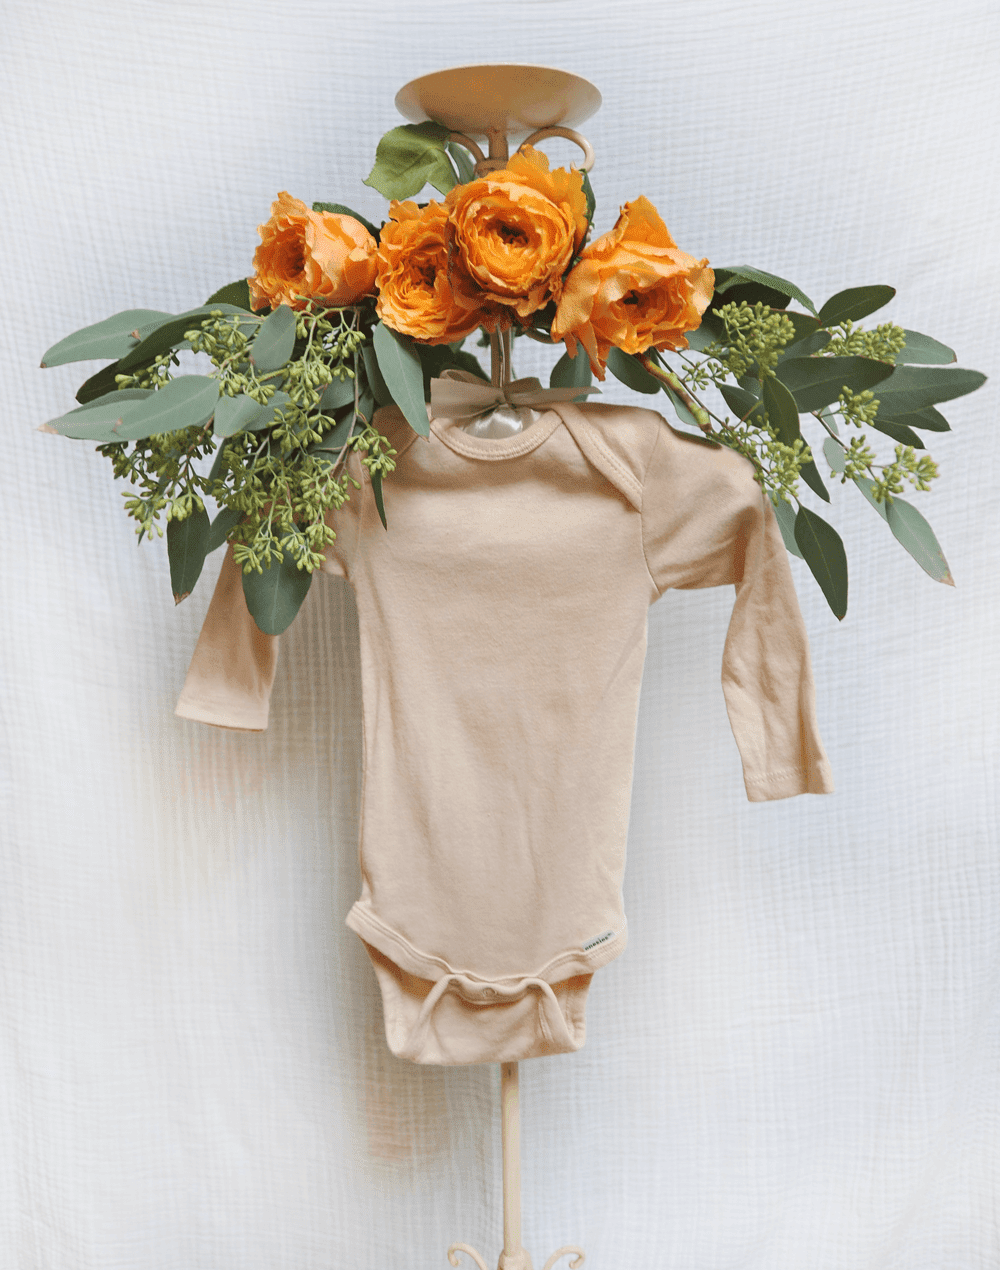 A new bloom diy and craft projects home interiors style and diy tea dyed onesie izmirmasajfo